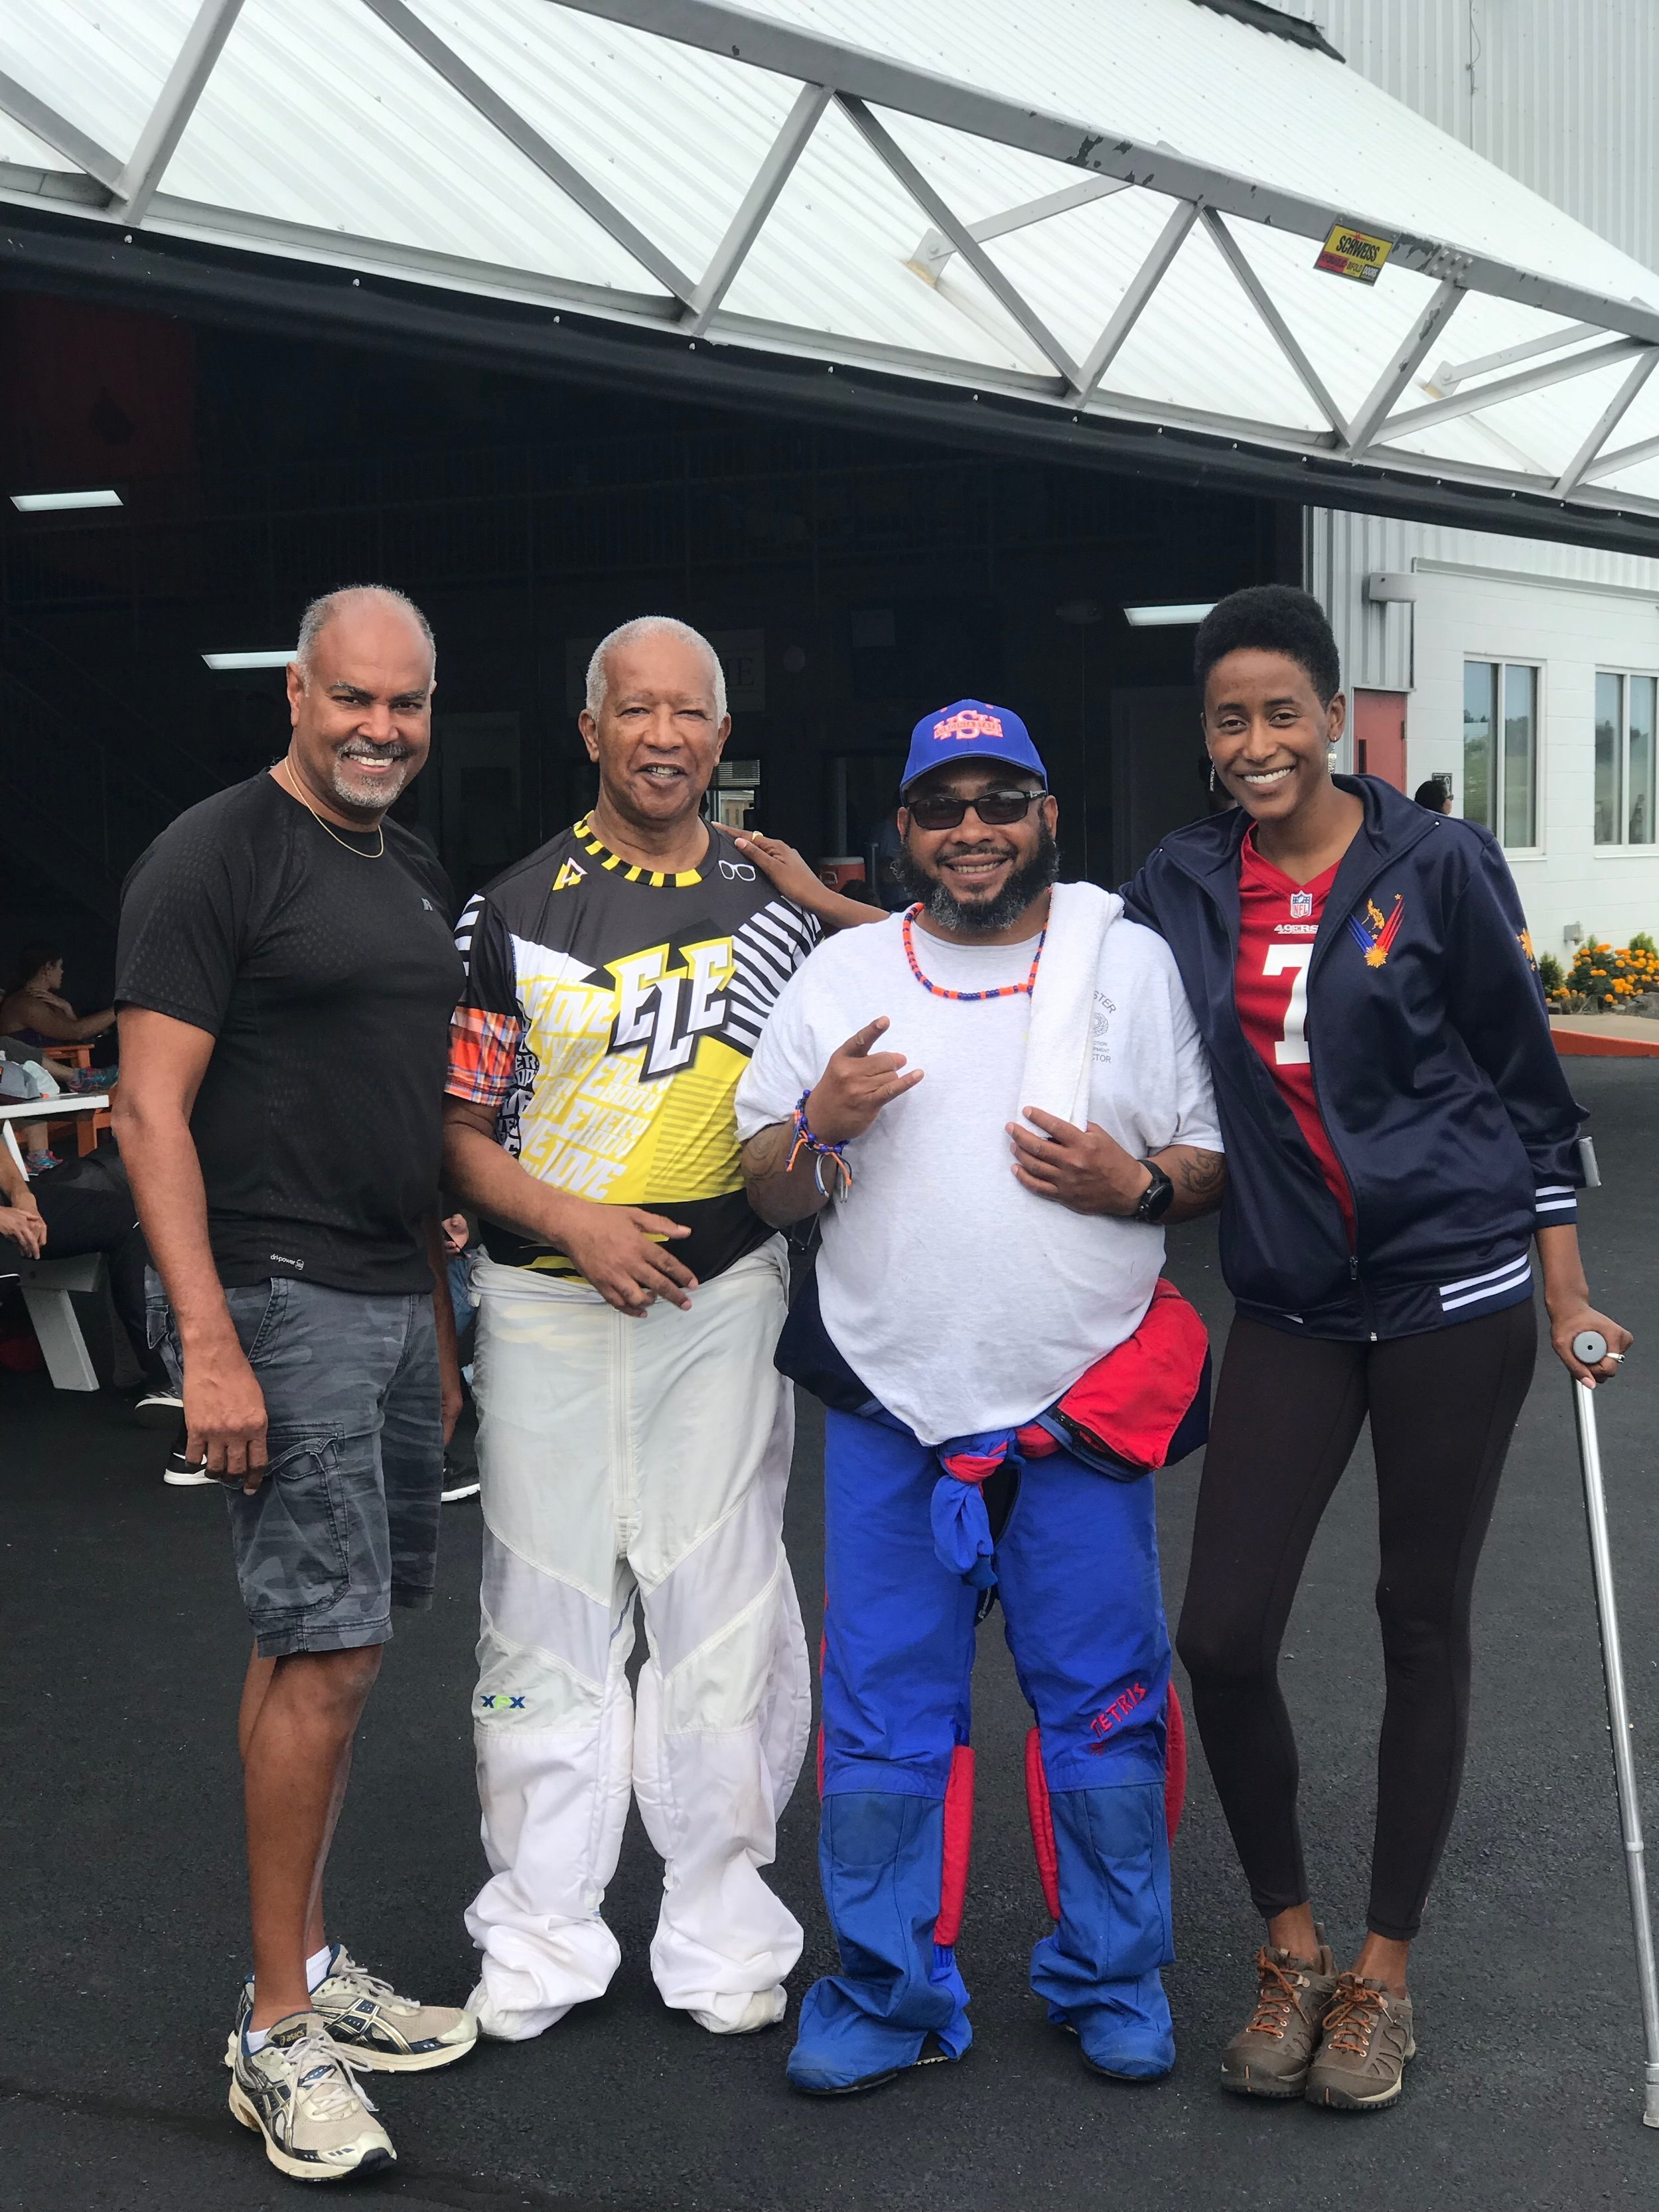 Harrison (2nd from l) poses with Team Blackstar skydivers in Virginia.